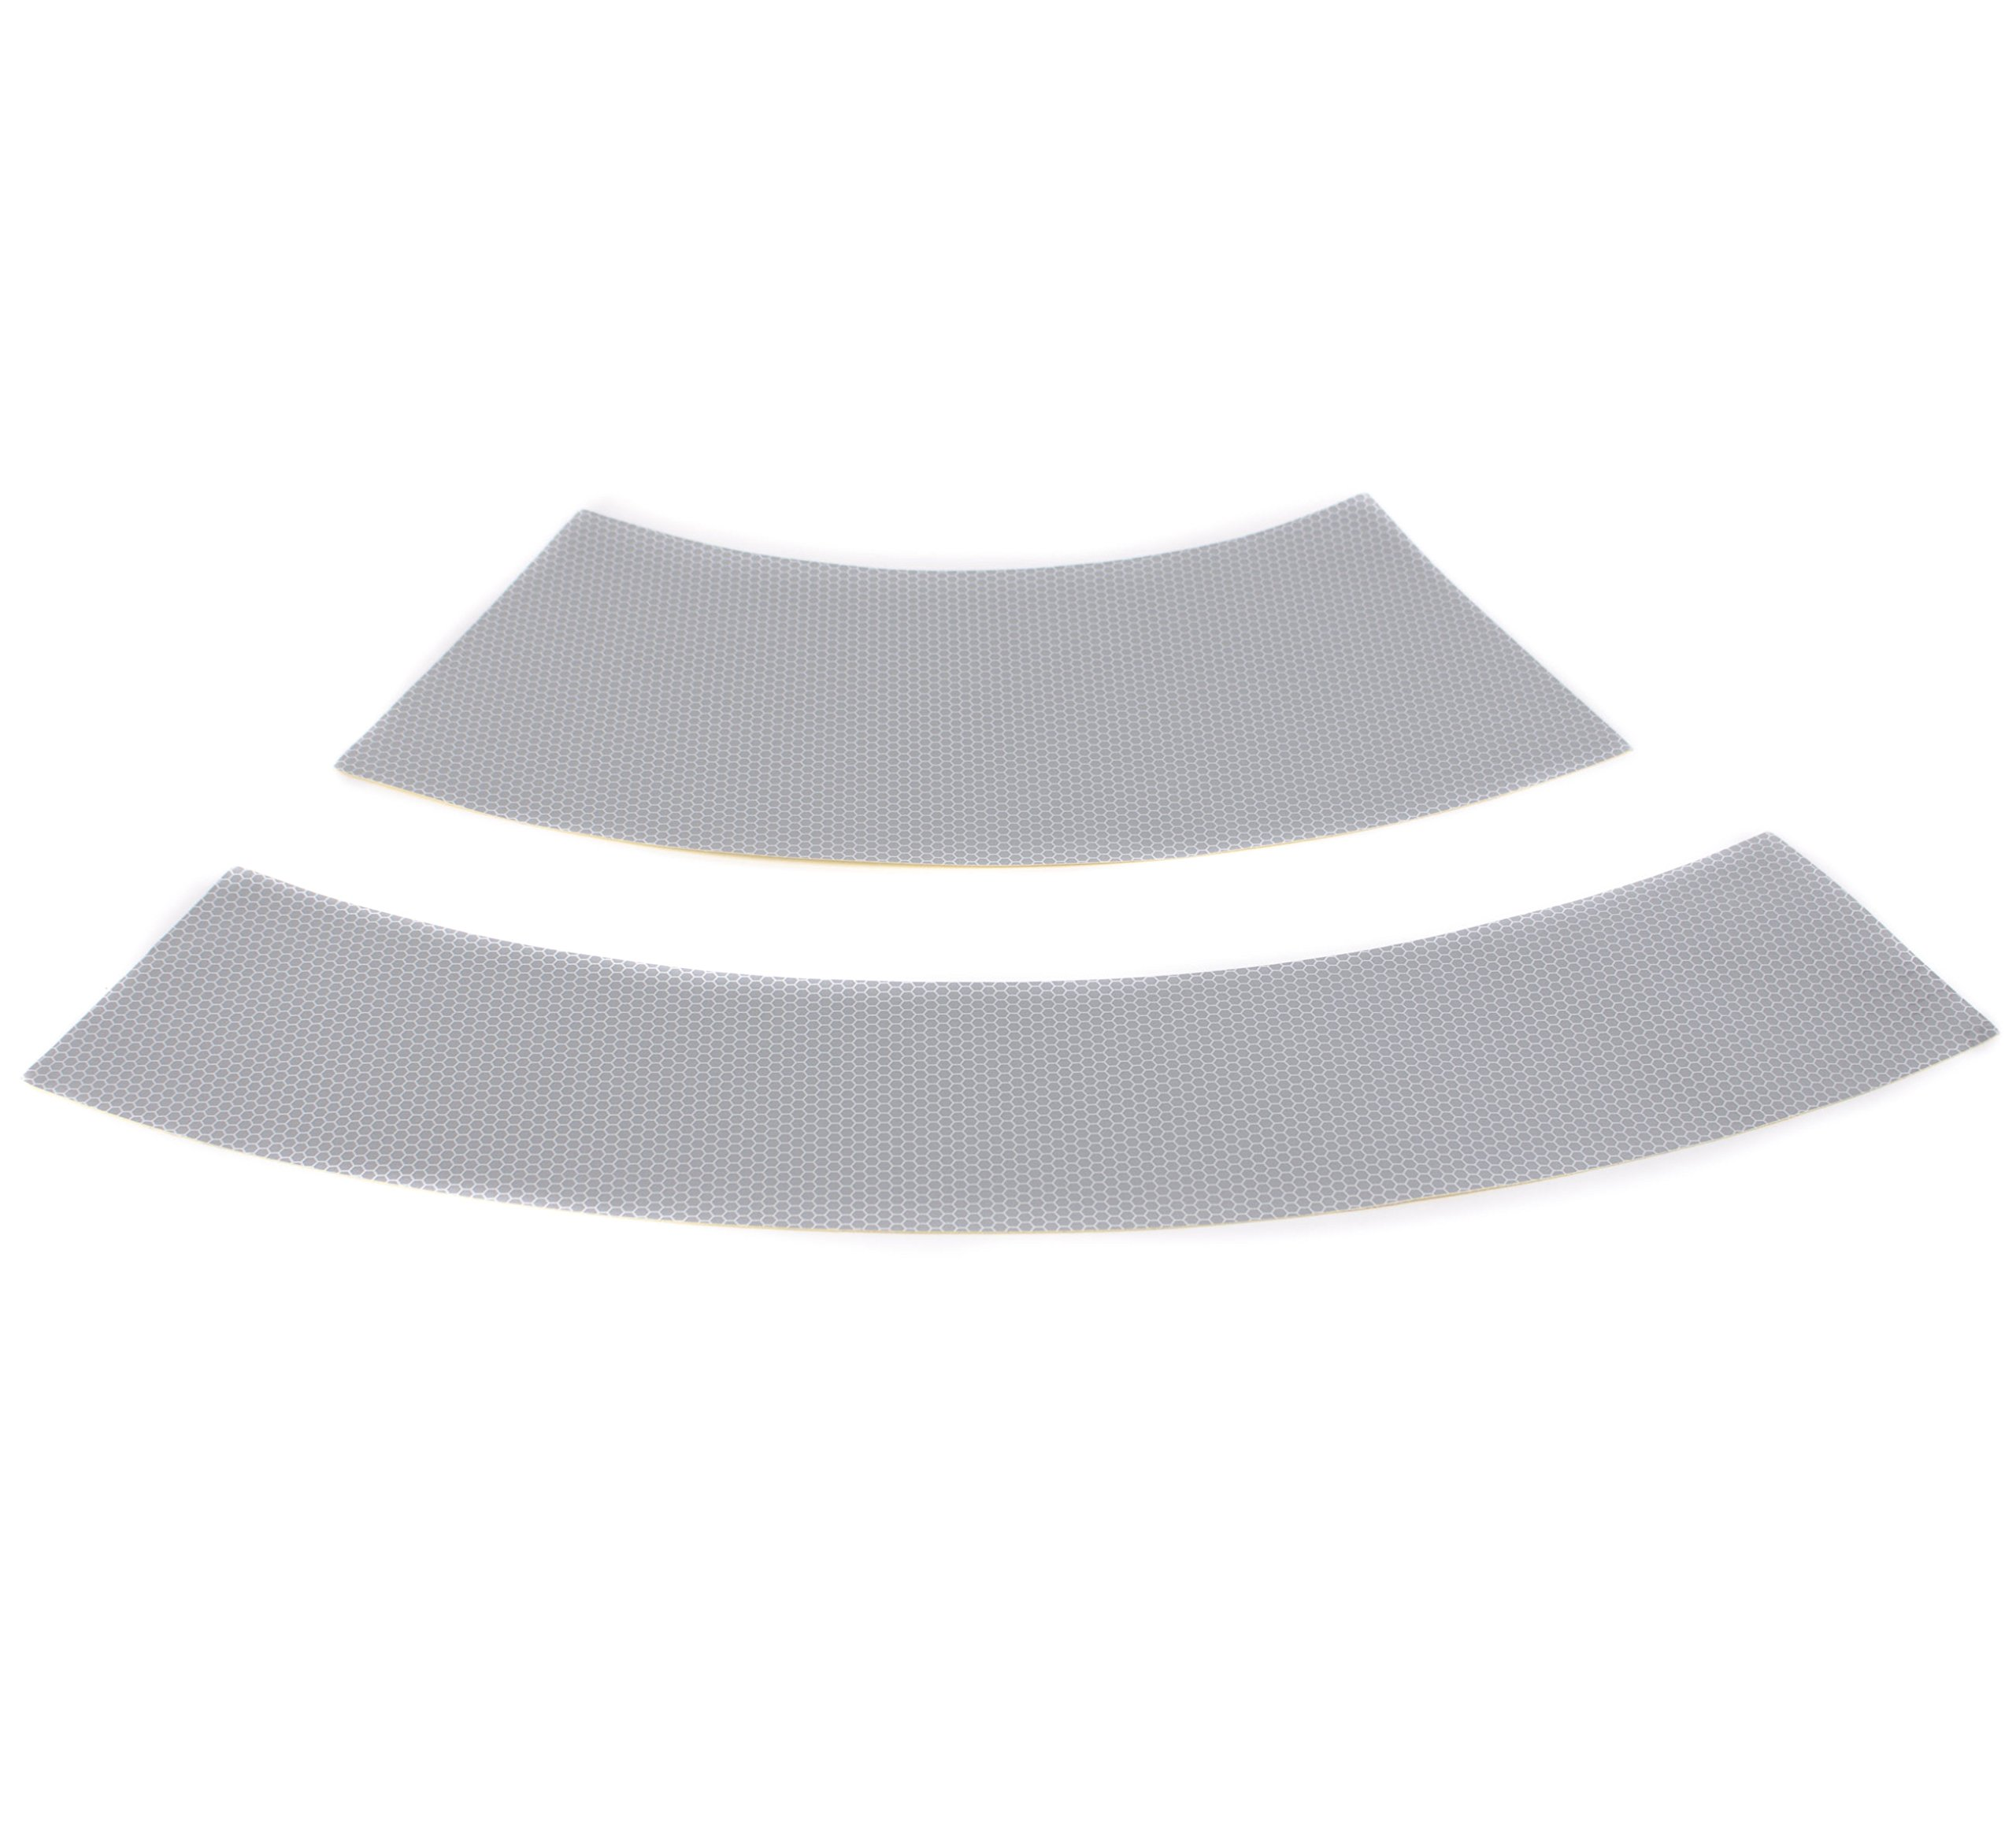 RK Safety RPCT36-2T 4 and 6 Inch Traffic Cone Collar Replacement Reflective Tapes | Intended for Use with 36'' Tall Cones